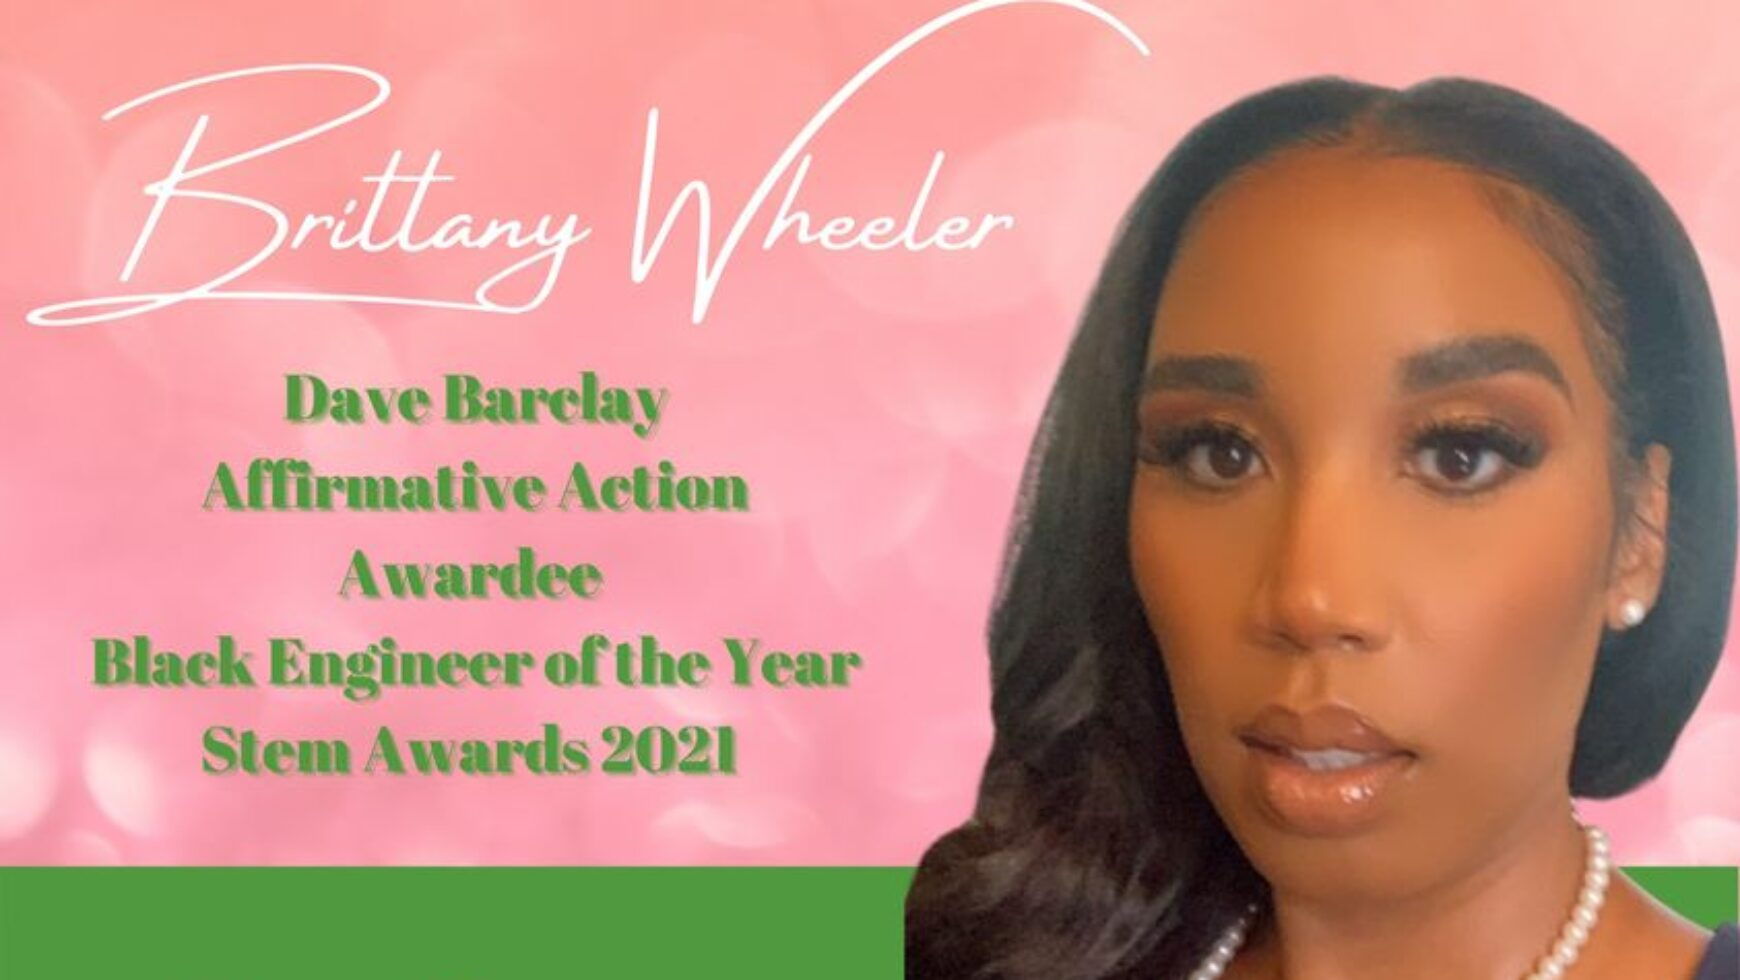 MLO Congratulates Brittany Wheeler as Black Engineer of the Year!